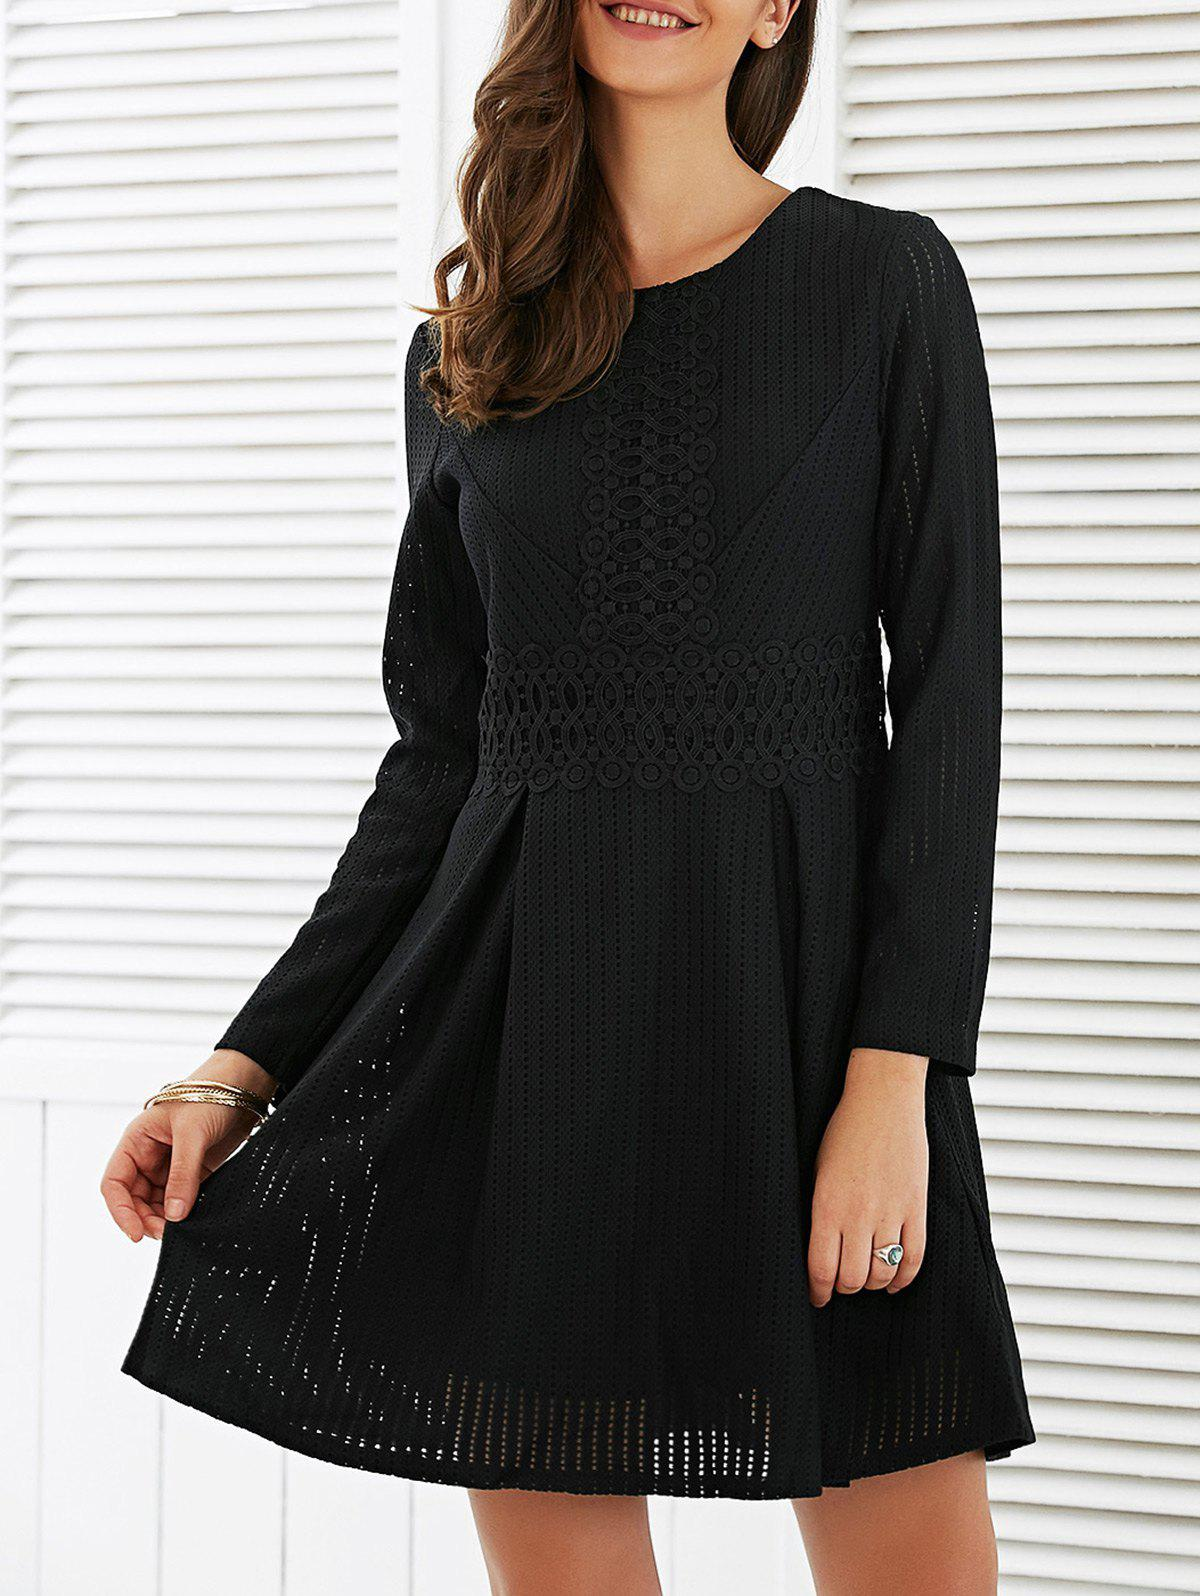 2018 Charme manches longues guipure Robe Noir XL In Robes Manches ... 38212a9bac6a